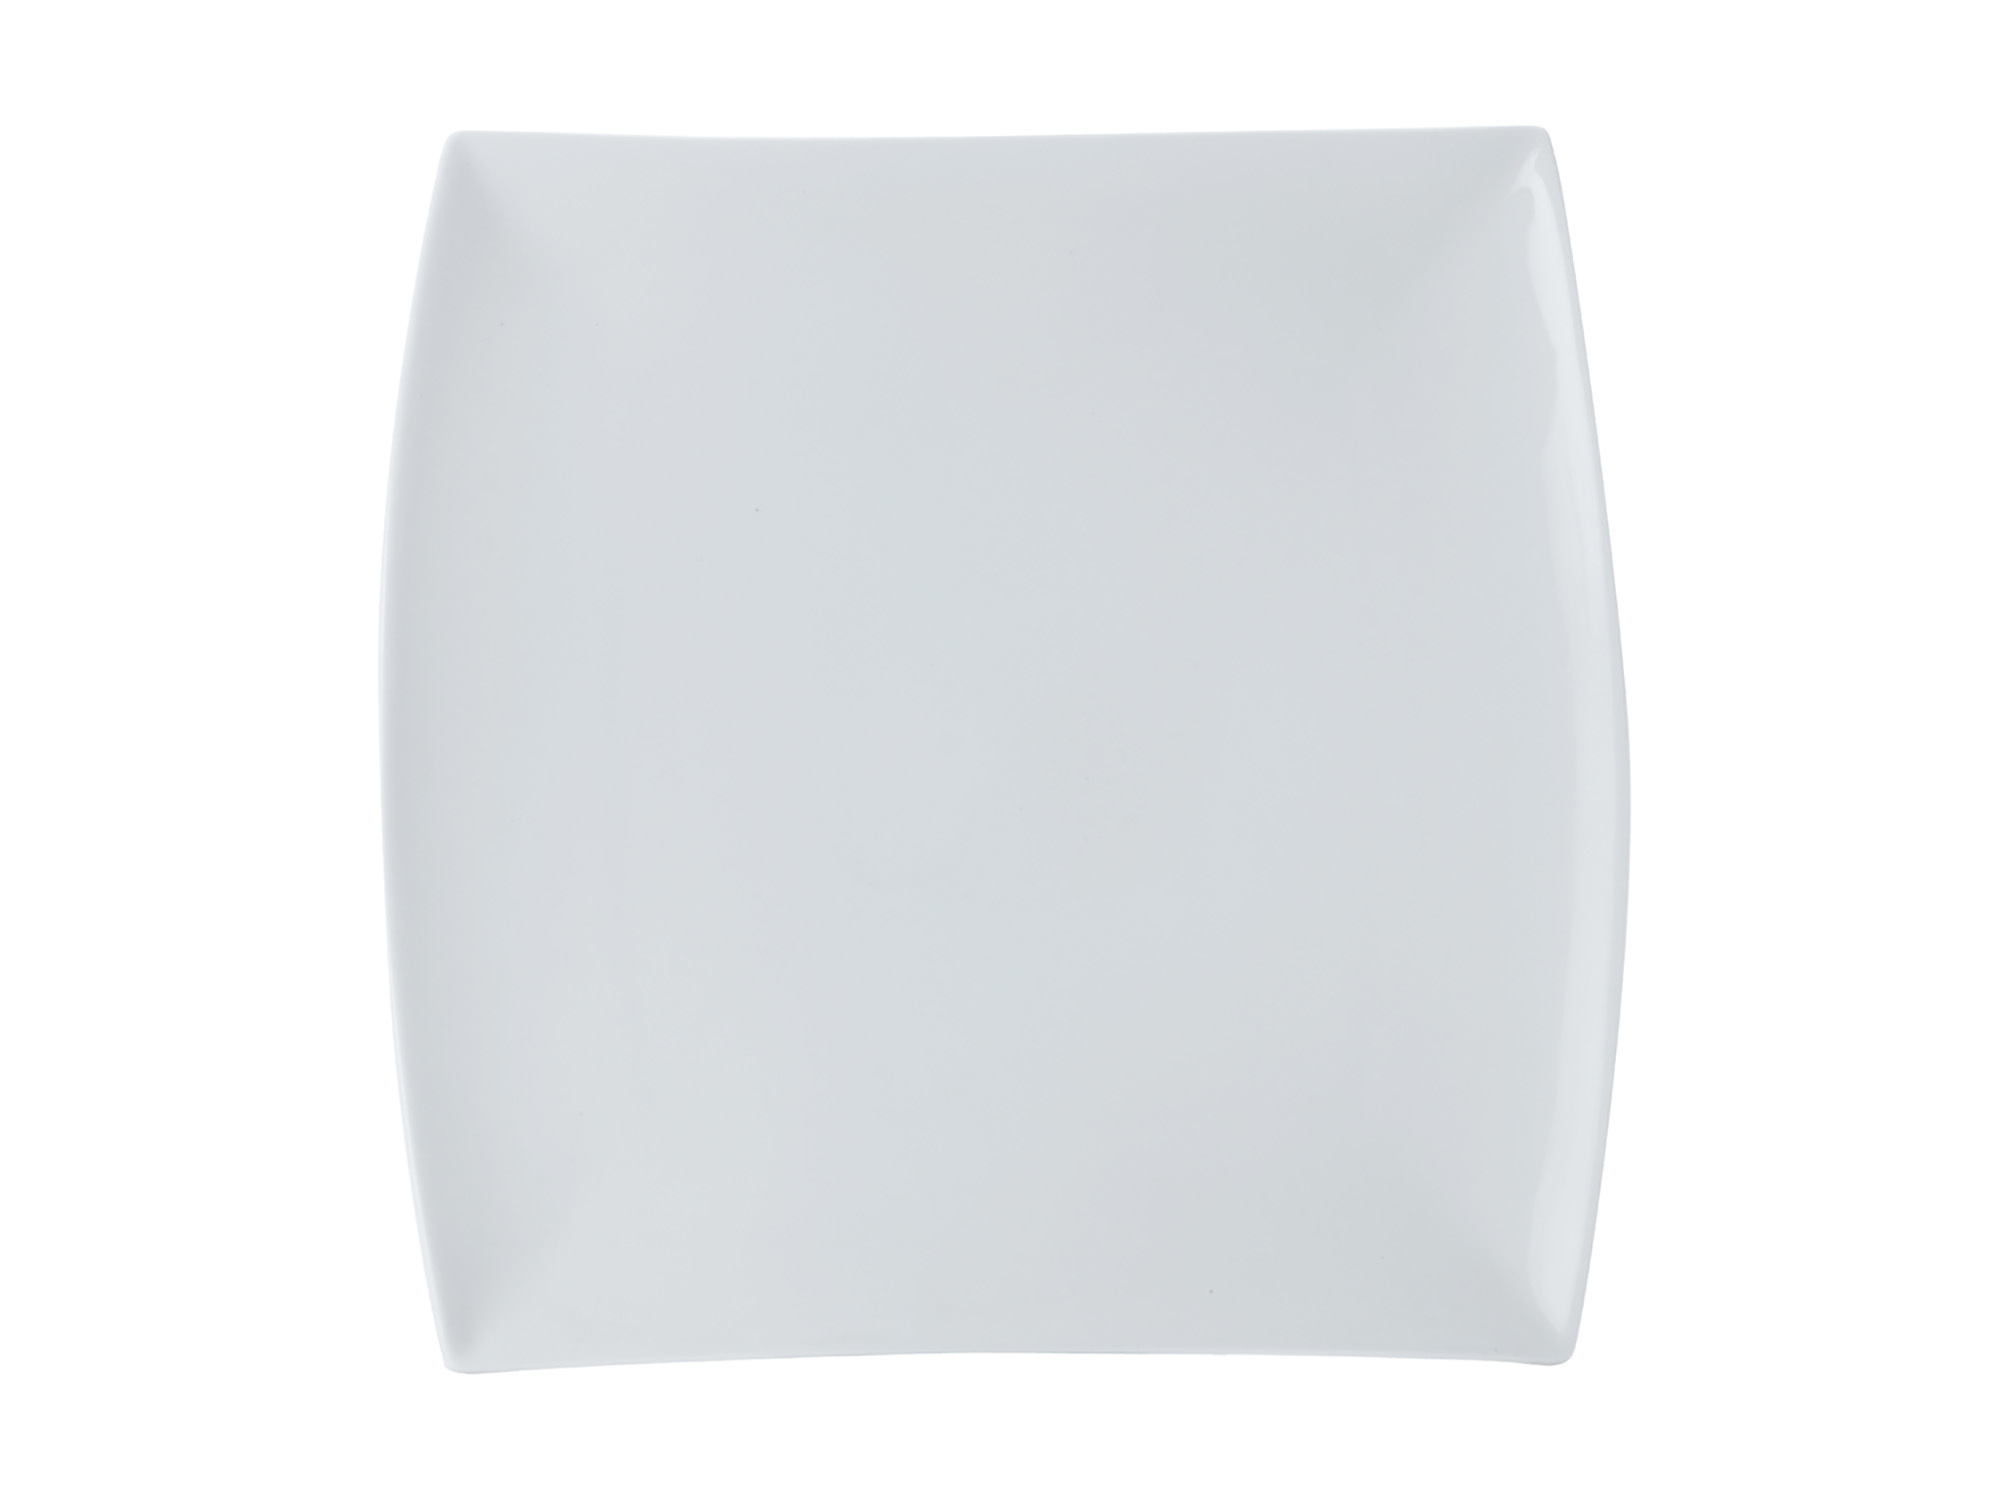 Maxwell & Williams White Basics East Meets West 13Cm Square Plate